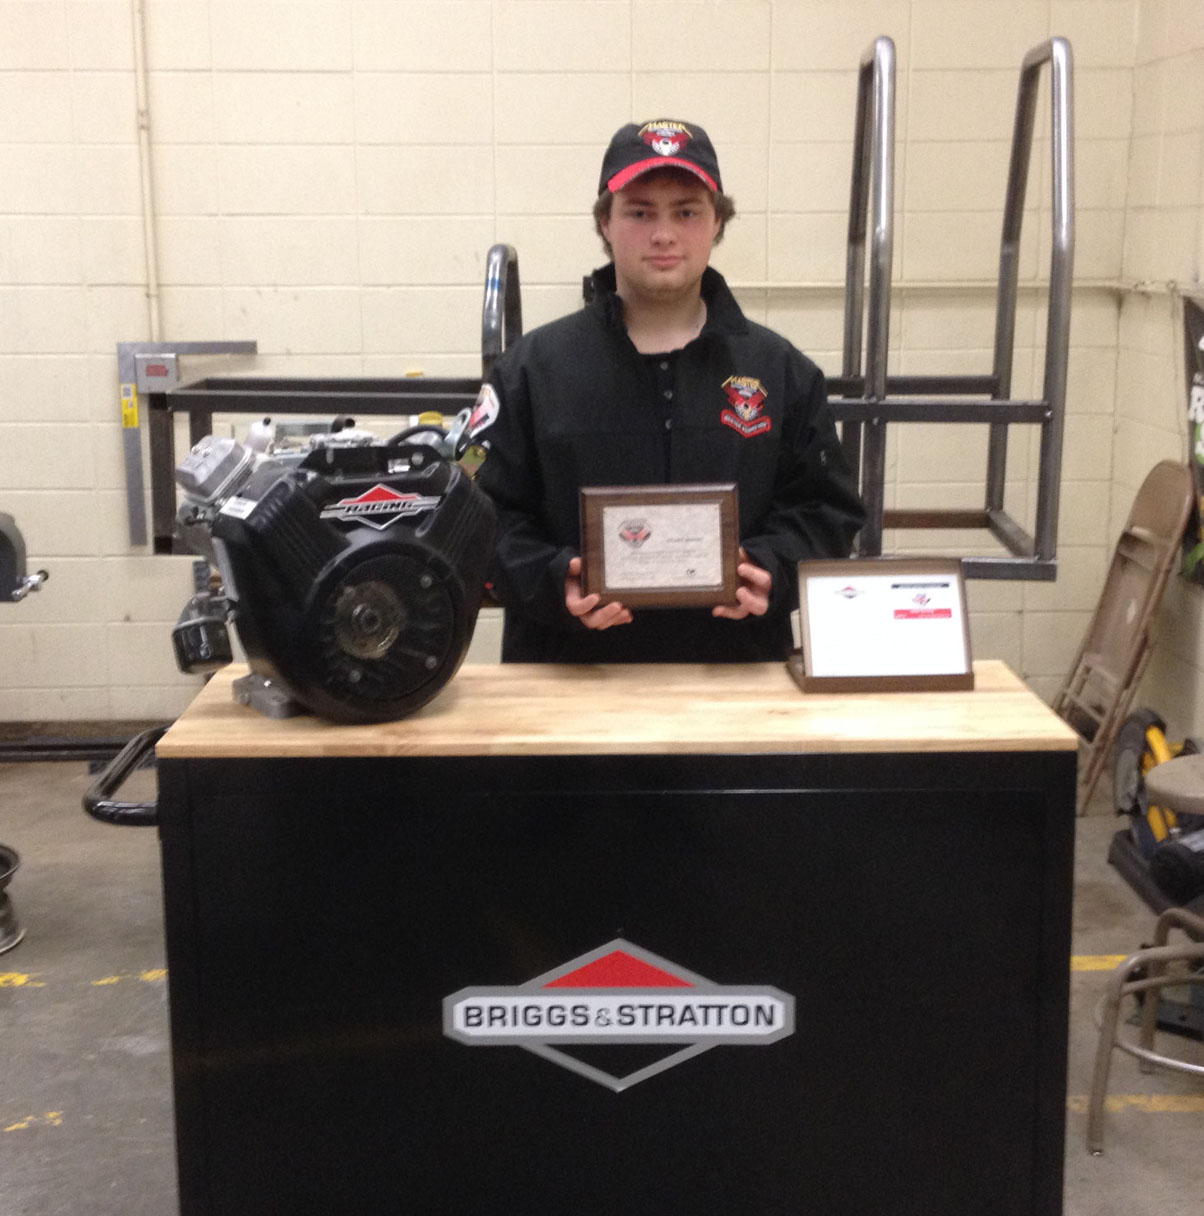 Receiving a certificate for having achieved the Briggs and Stratton MST, master service technician, rating, Homer High School junior Nolan Bunting also was gifted by the company with other items. Bunting is enrolled in Homer High's small engine class taught by Cam Wyatt.-Photo provided